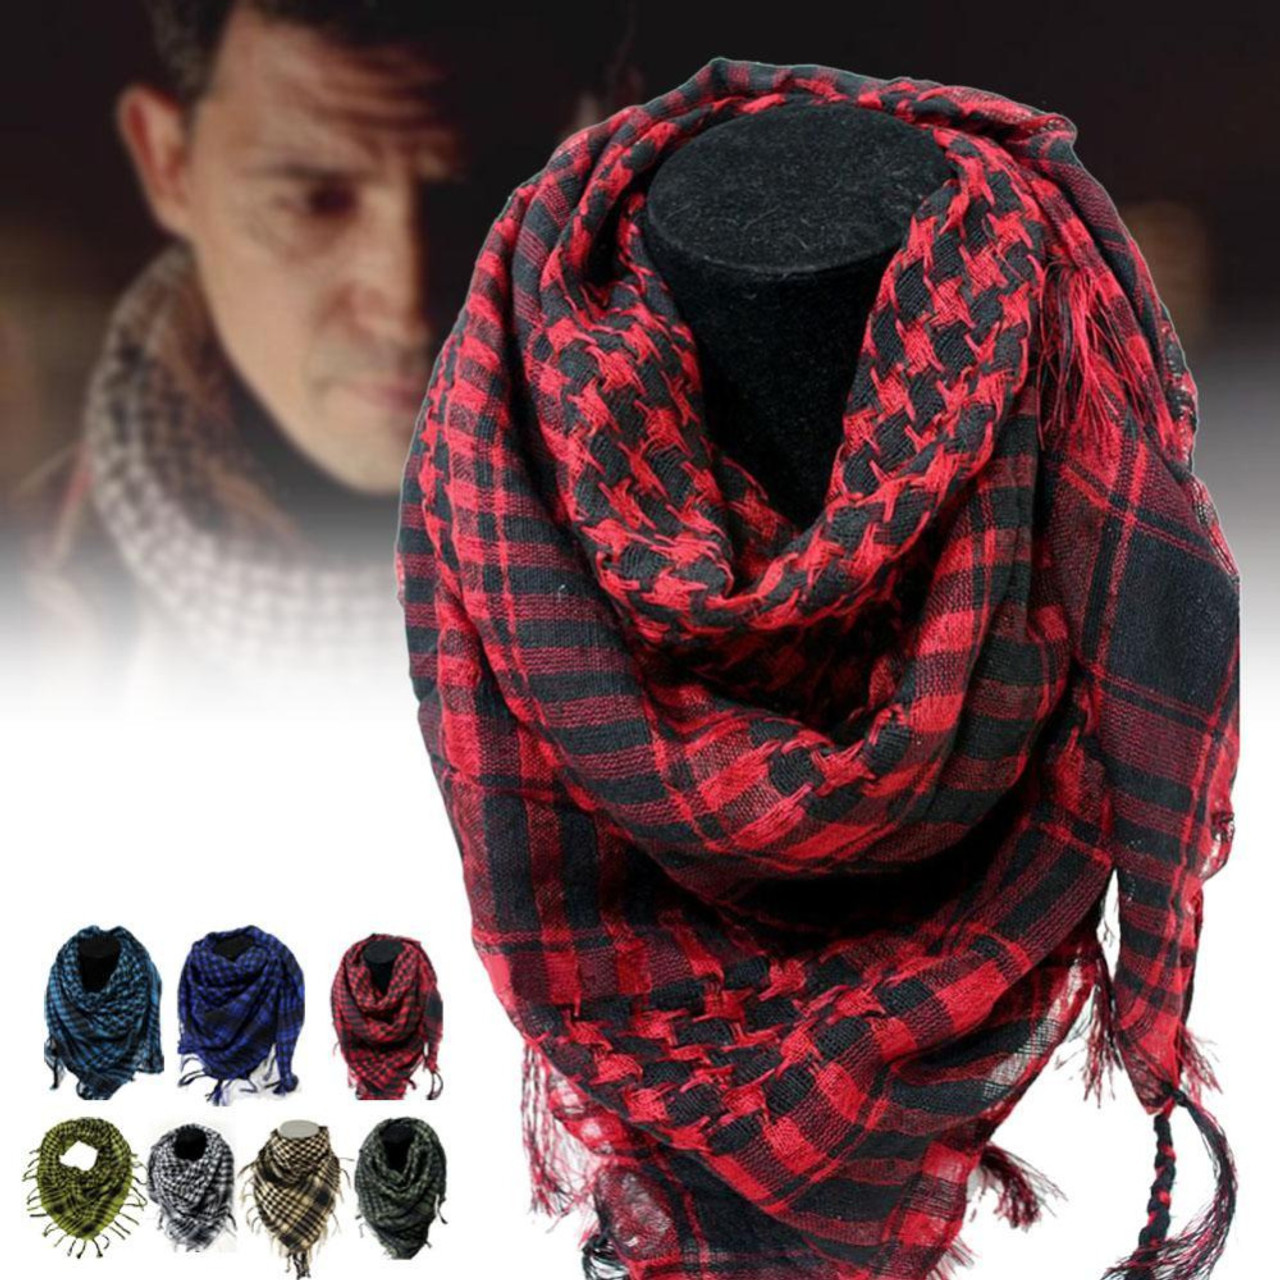 Best 100% Cotton Arab Scarves Thick Muslim Hijab Tactical Desert Men or  Women Winter Windy Military Windproof Scarf - OnshopDeals.Com 1400b83c4